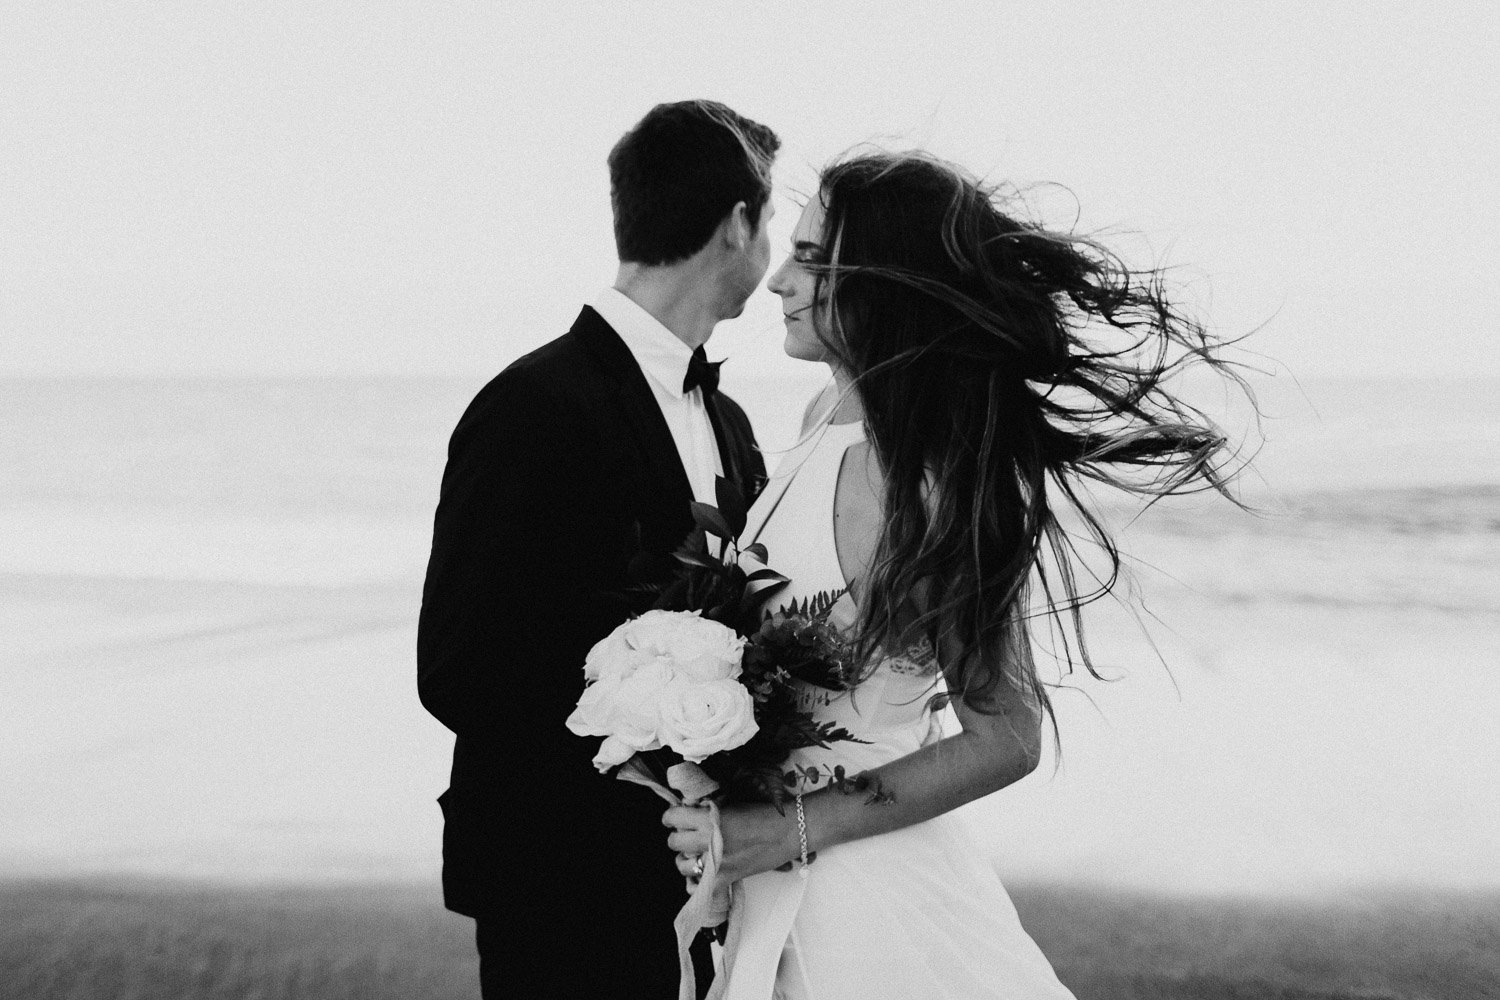 Black and White image of groom and bride stand together on beach